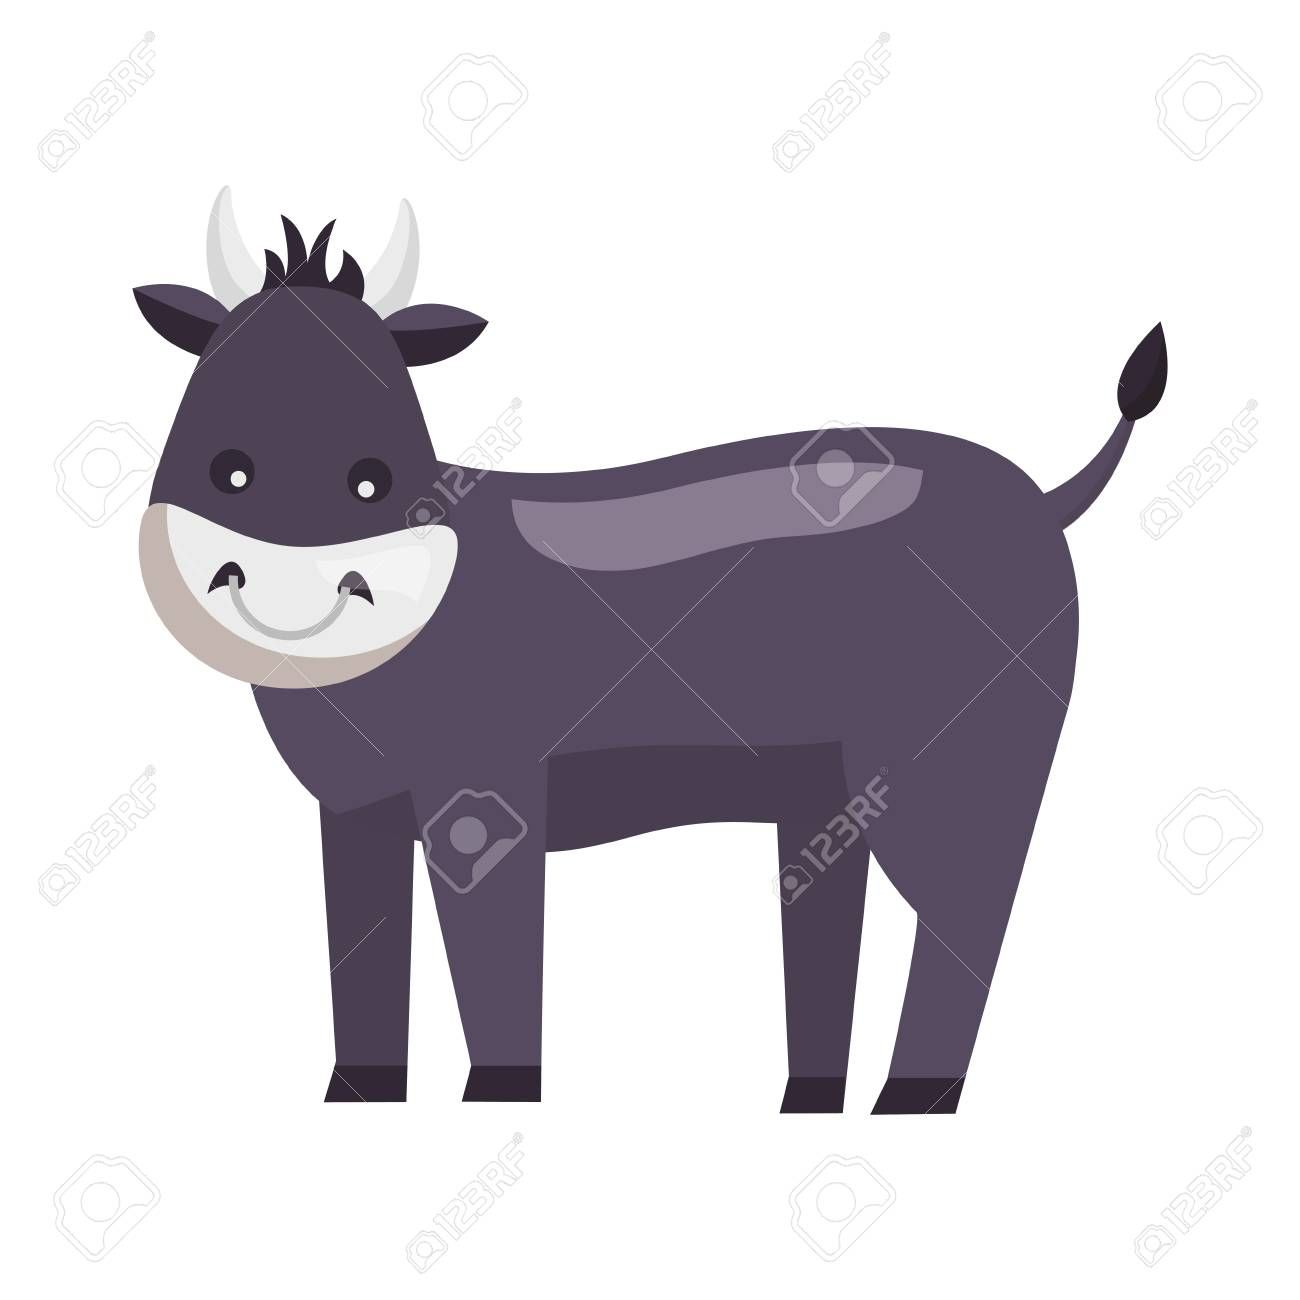 Bull Farm Animal On White Background Vector Illustration Affiliate Animal Farm Bull White Illustration Illustration Animals Farm Animals